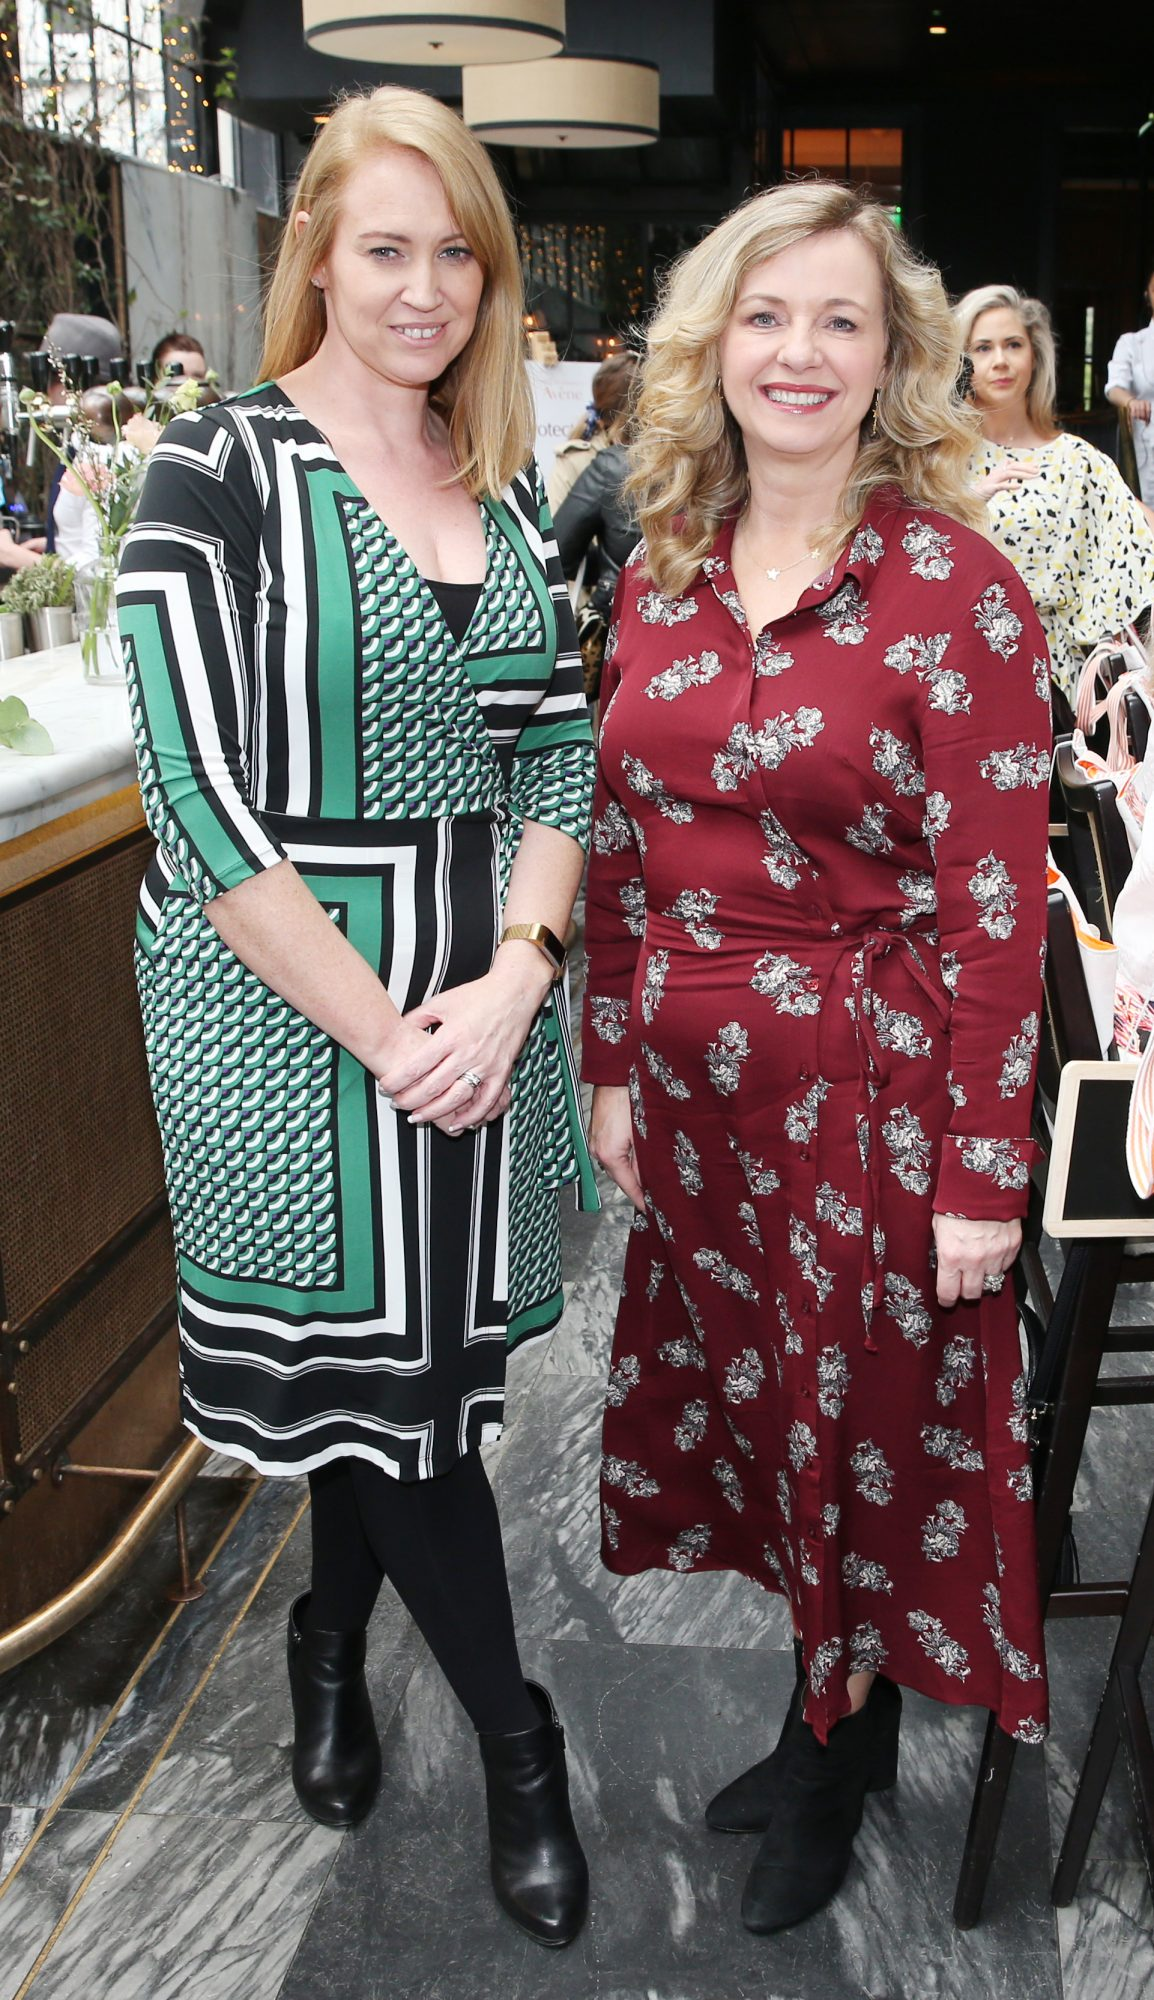 Pictured is Melaine Black and Denise Cantwell at the launch of the new Avène Expert Suncare Range in The Grayson Dublin. The new range of suncare from the French brand is suitable for all skin types and includes a Sports Sun Cream, a City Shield BB Style High Protection Face Cream, two new SPF Body Sprays and a new Very High Protection Children's SPF. For more information visit www.avene.ie. Photo: Leon Farrell/Photocall Ireland.